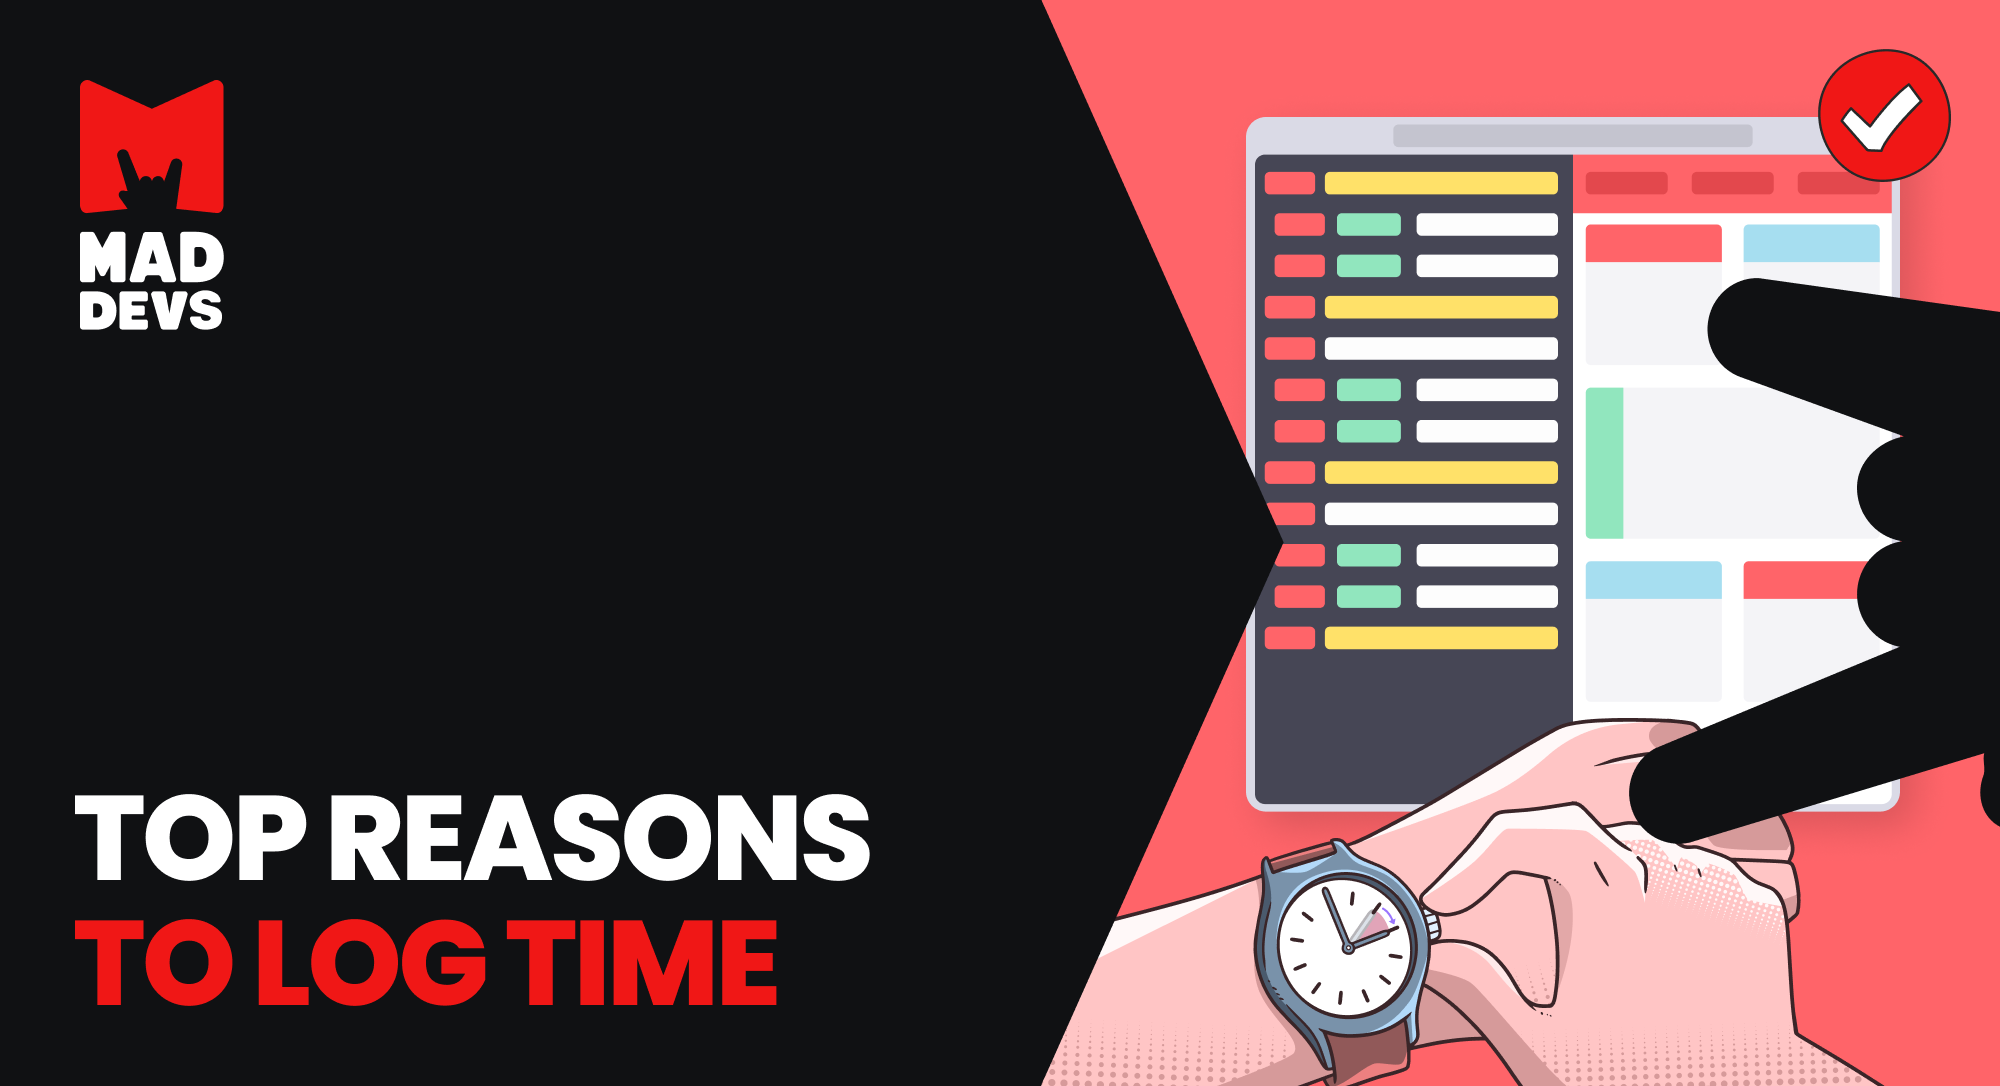 Top Reasons to Log Time.